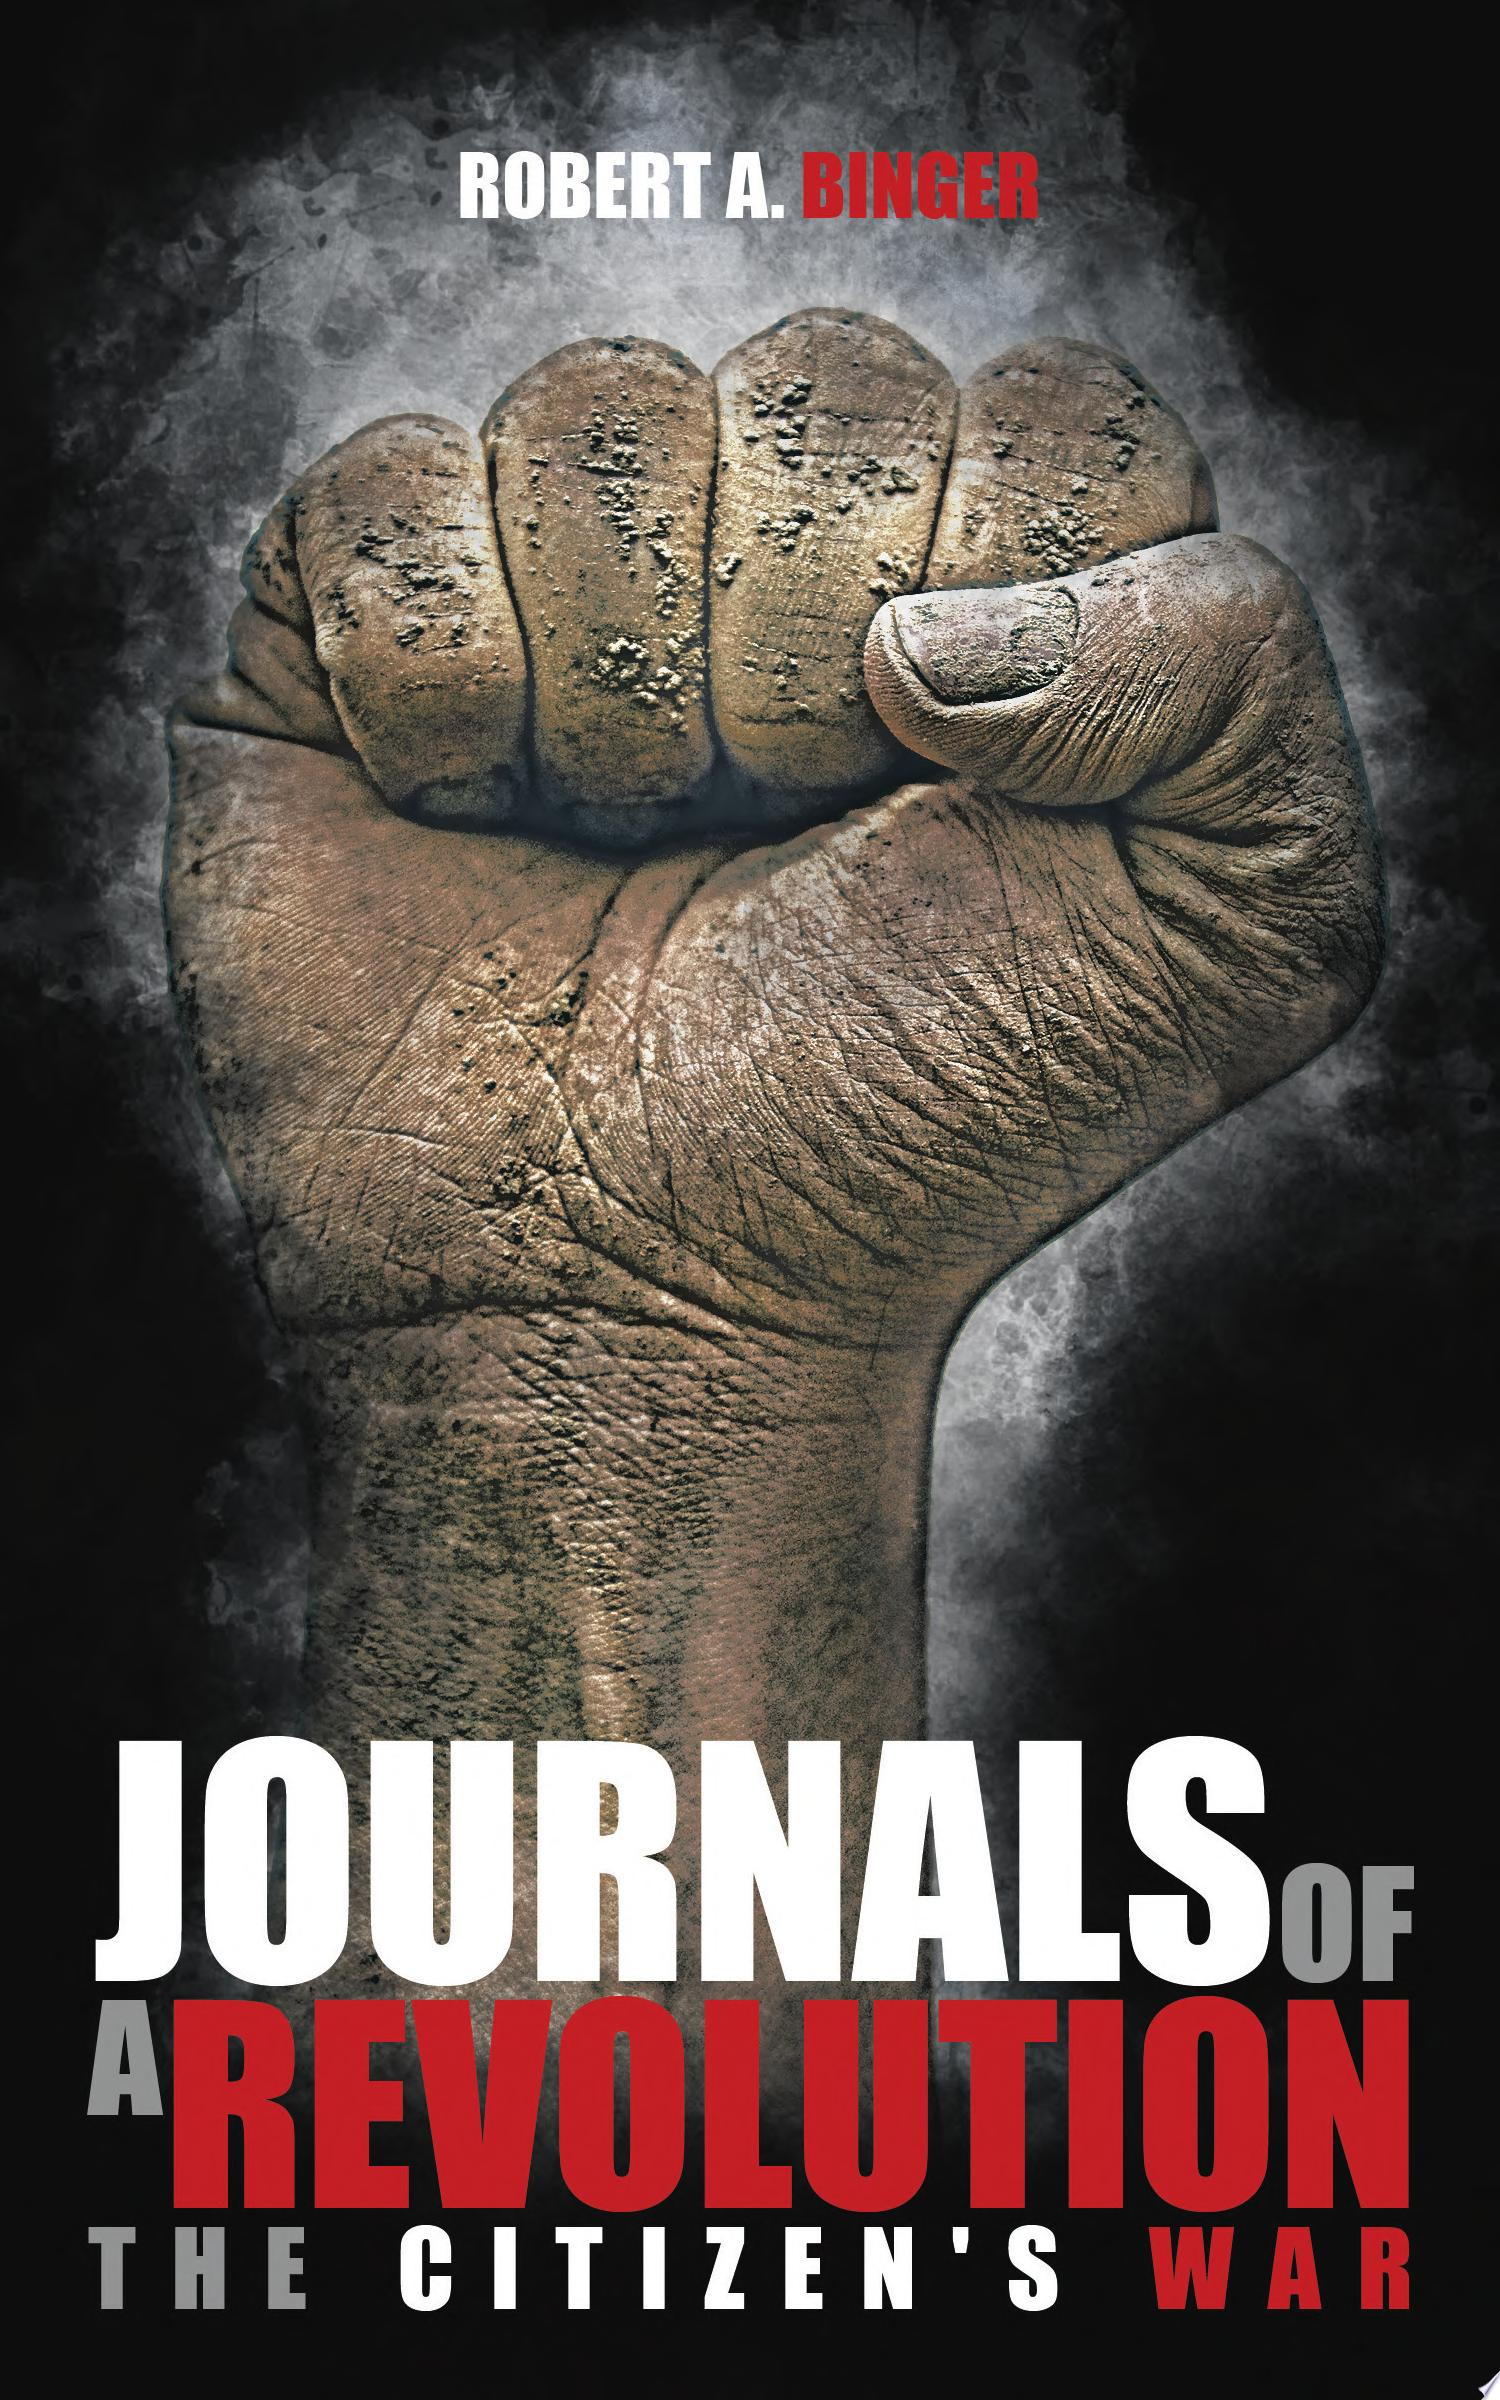 Journals of a Revolution